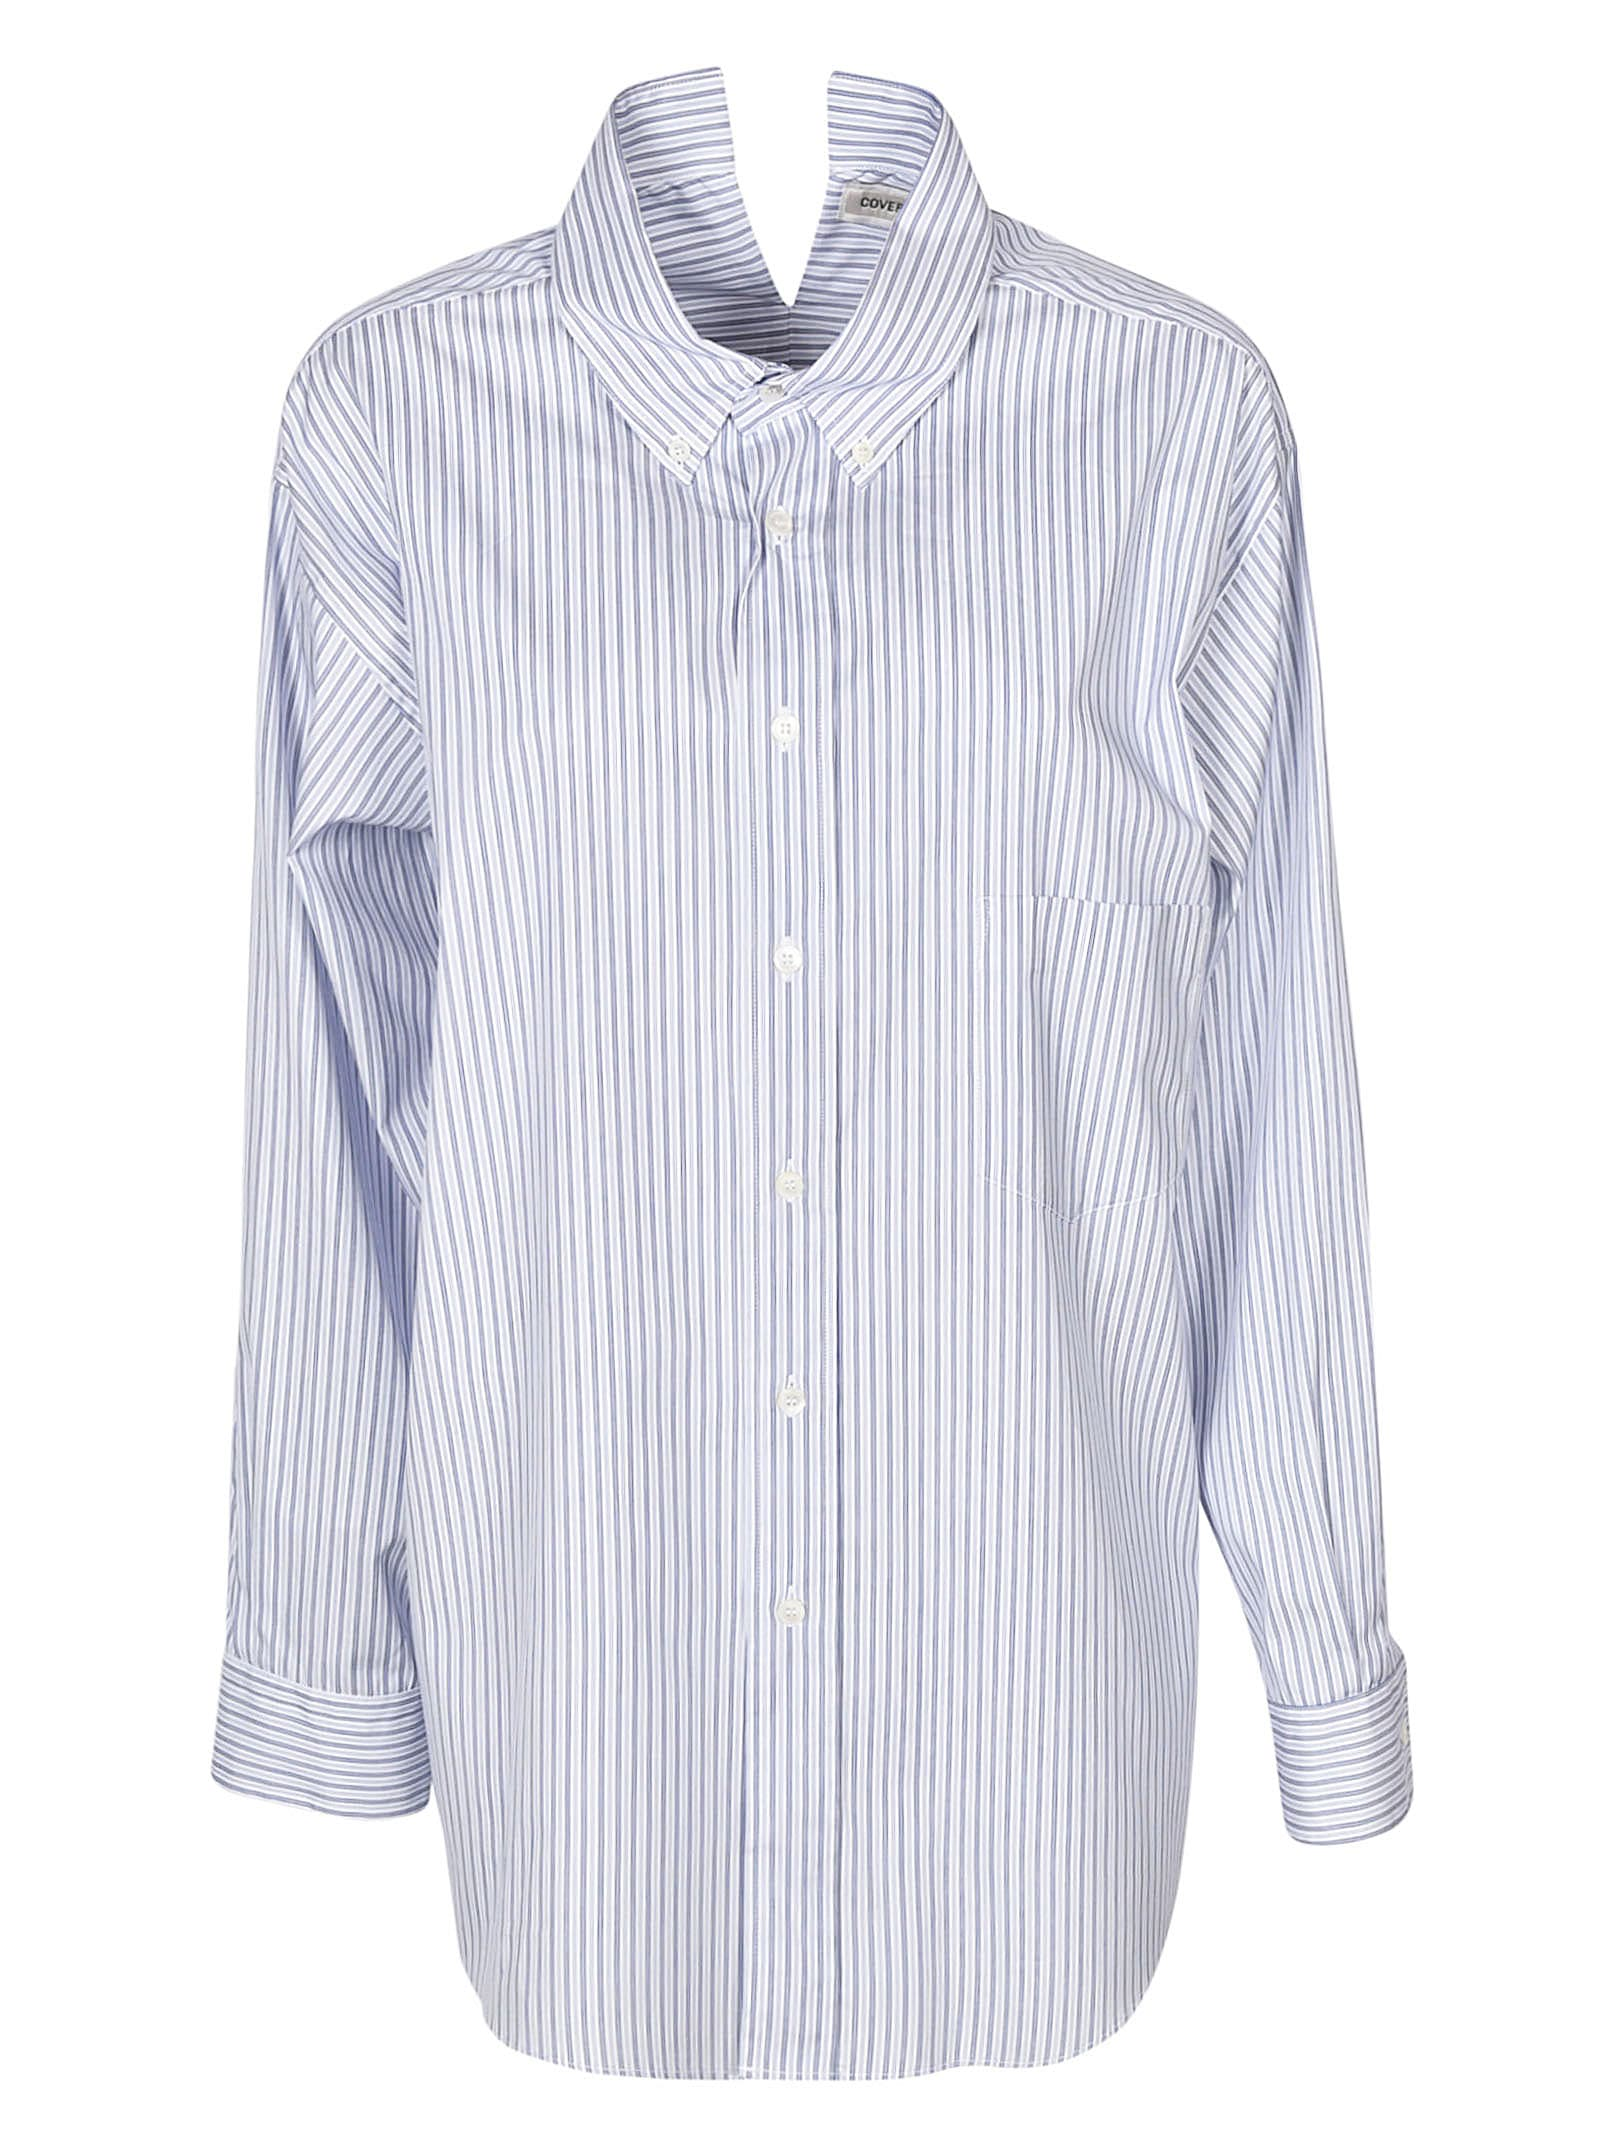 Official Striped Shirt